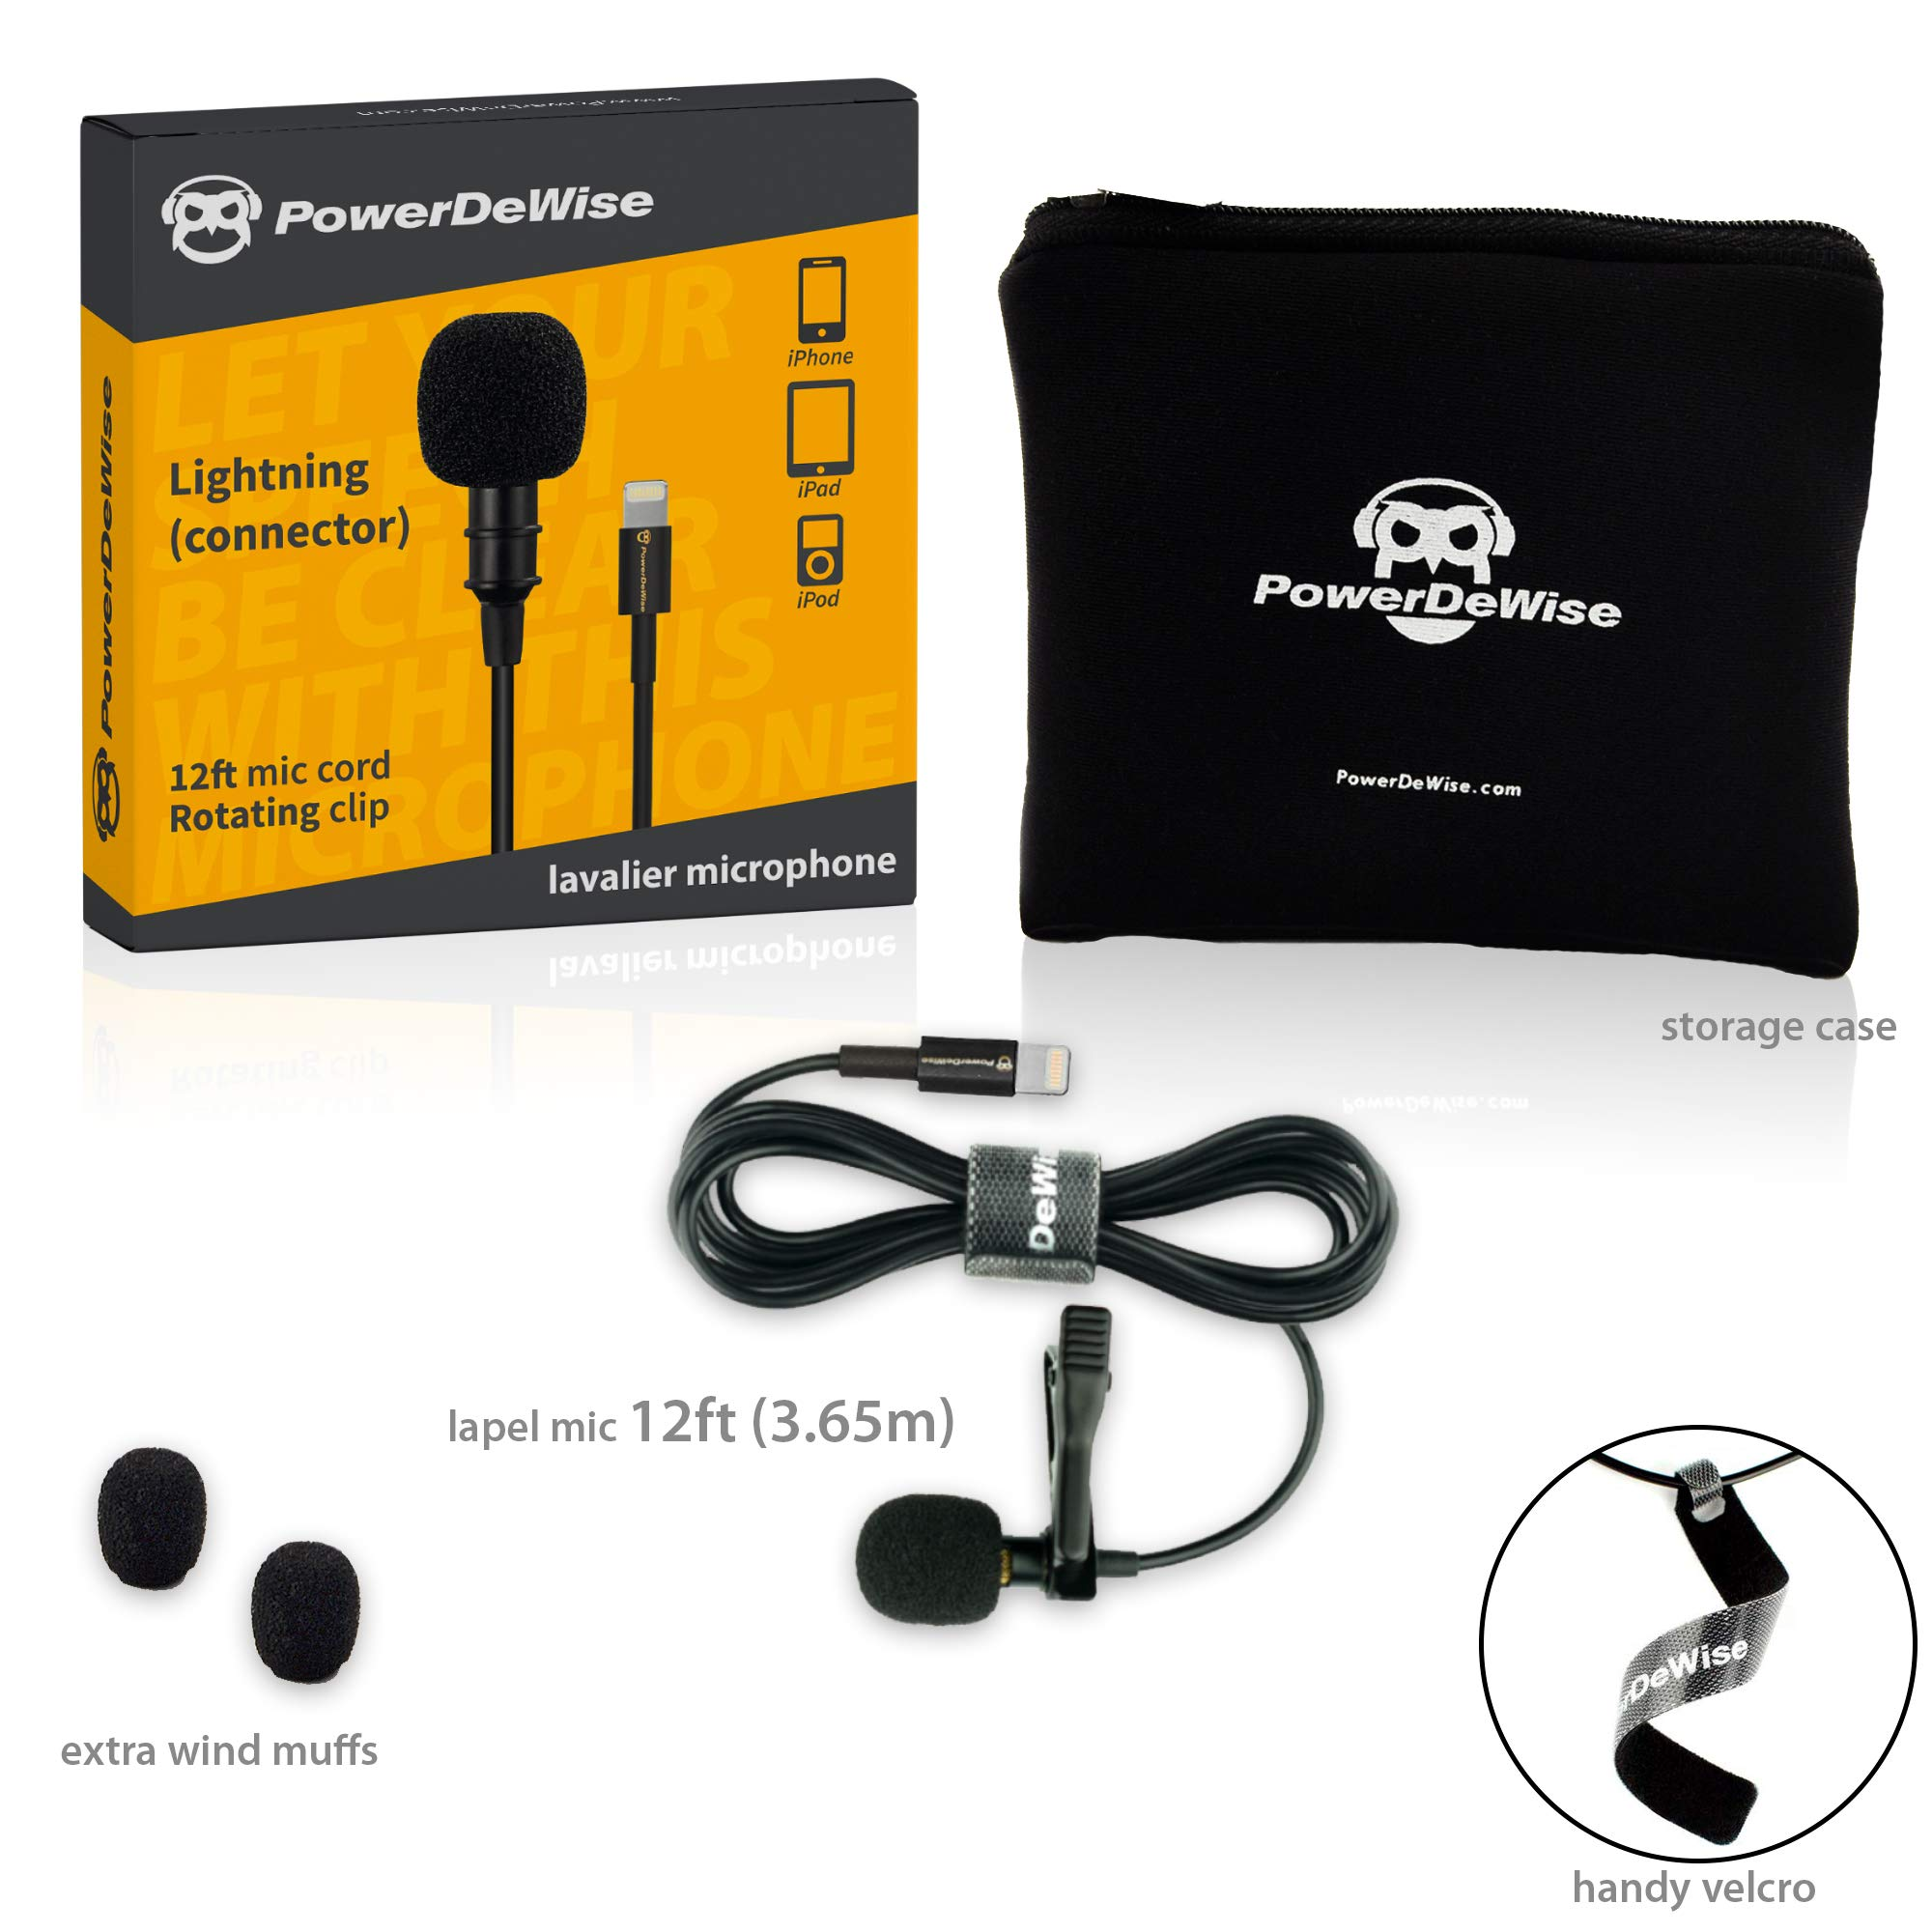 PowerDeWise Microphone for iPhone with Lightning Connector - iPhone Lightning Microphone - Excellent Mic iPhone 6 7 8 X by PowerDeWise (Image #2)